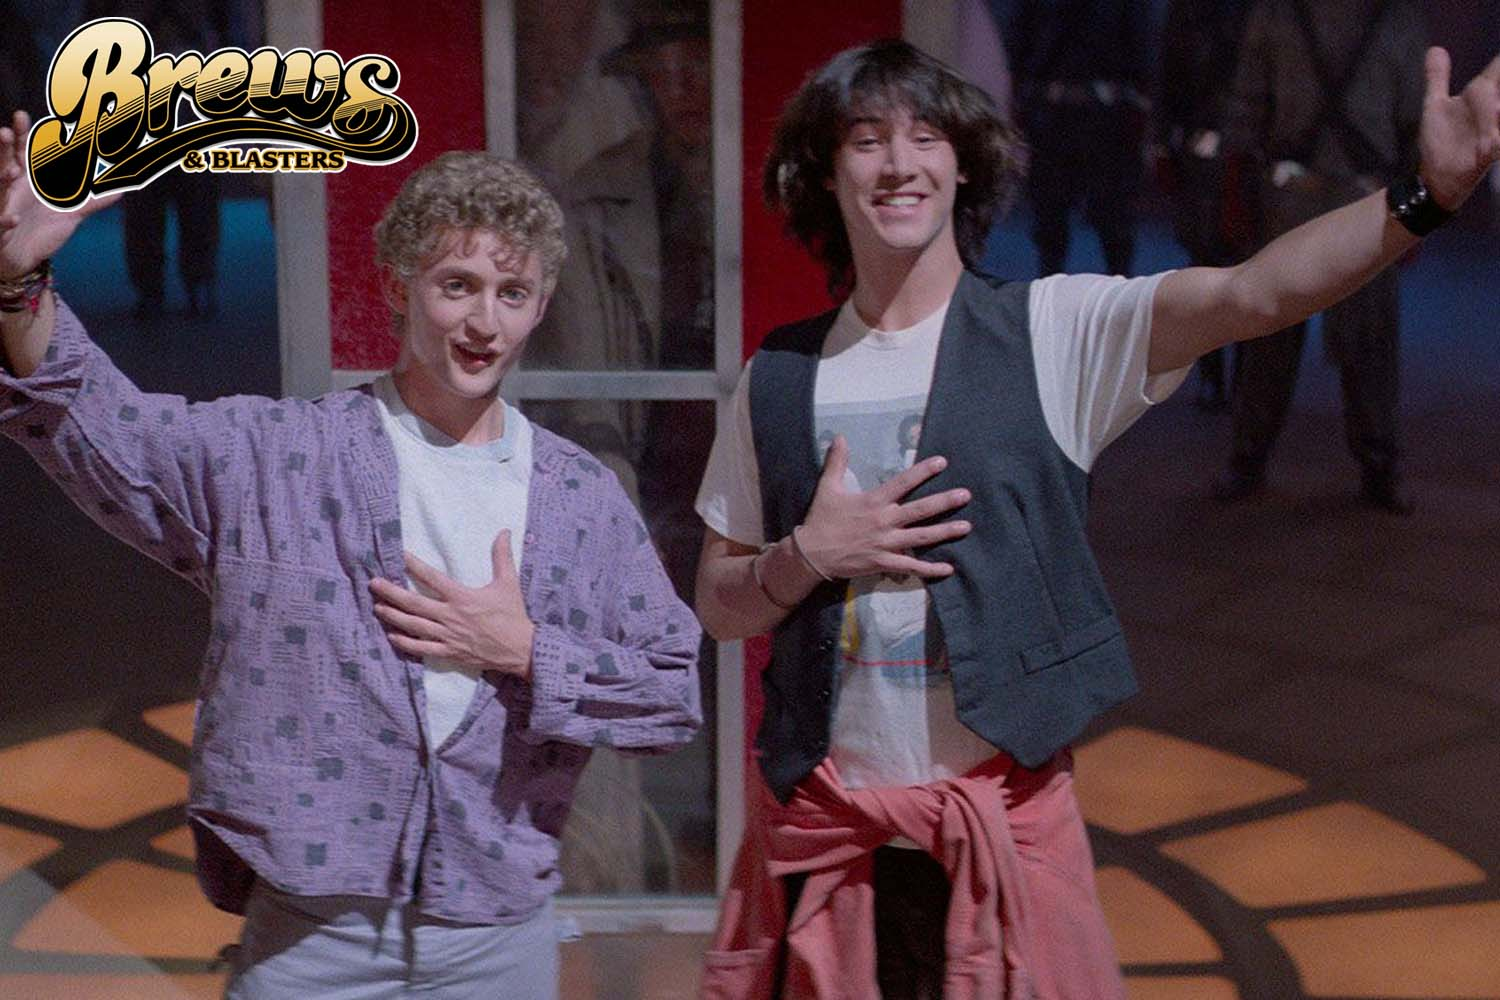 Brews and Blasters 272: Bill and Ted's Excellent Adventure Commentary